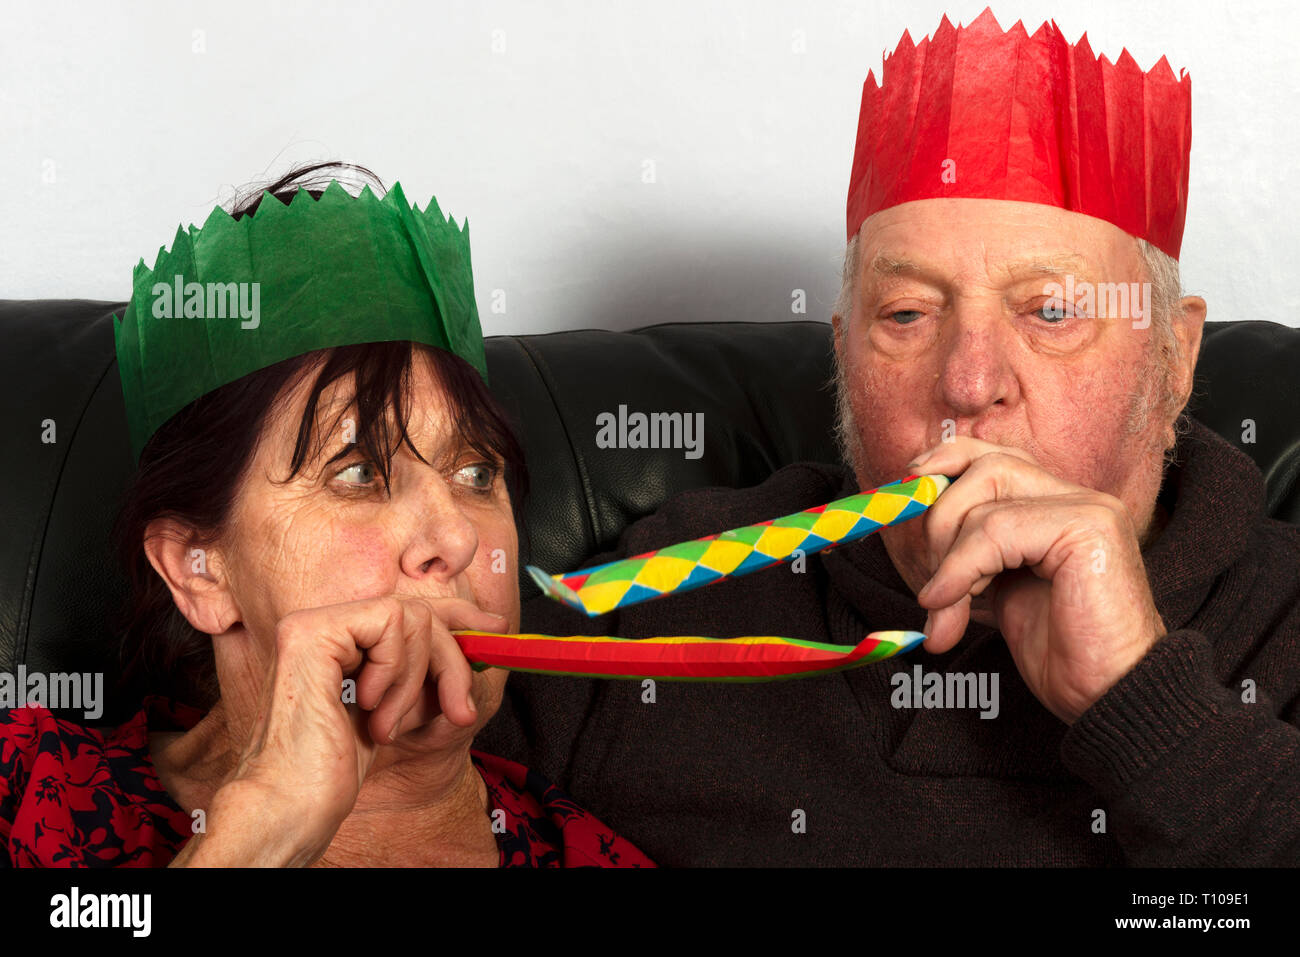 Elderly couple wearing paper Christmas cracker hats - Stock Image